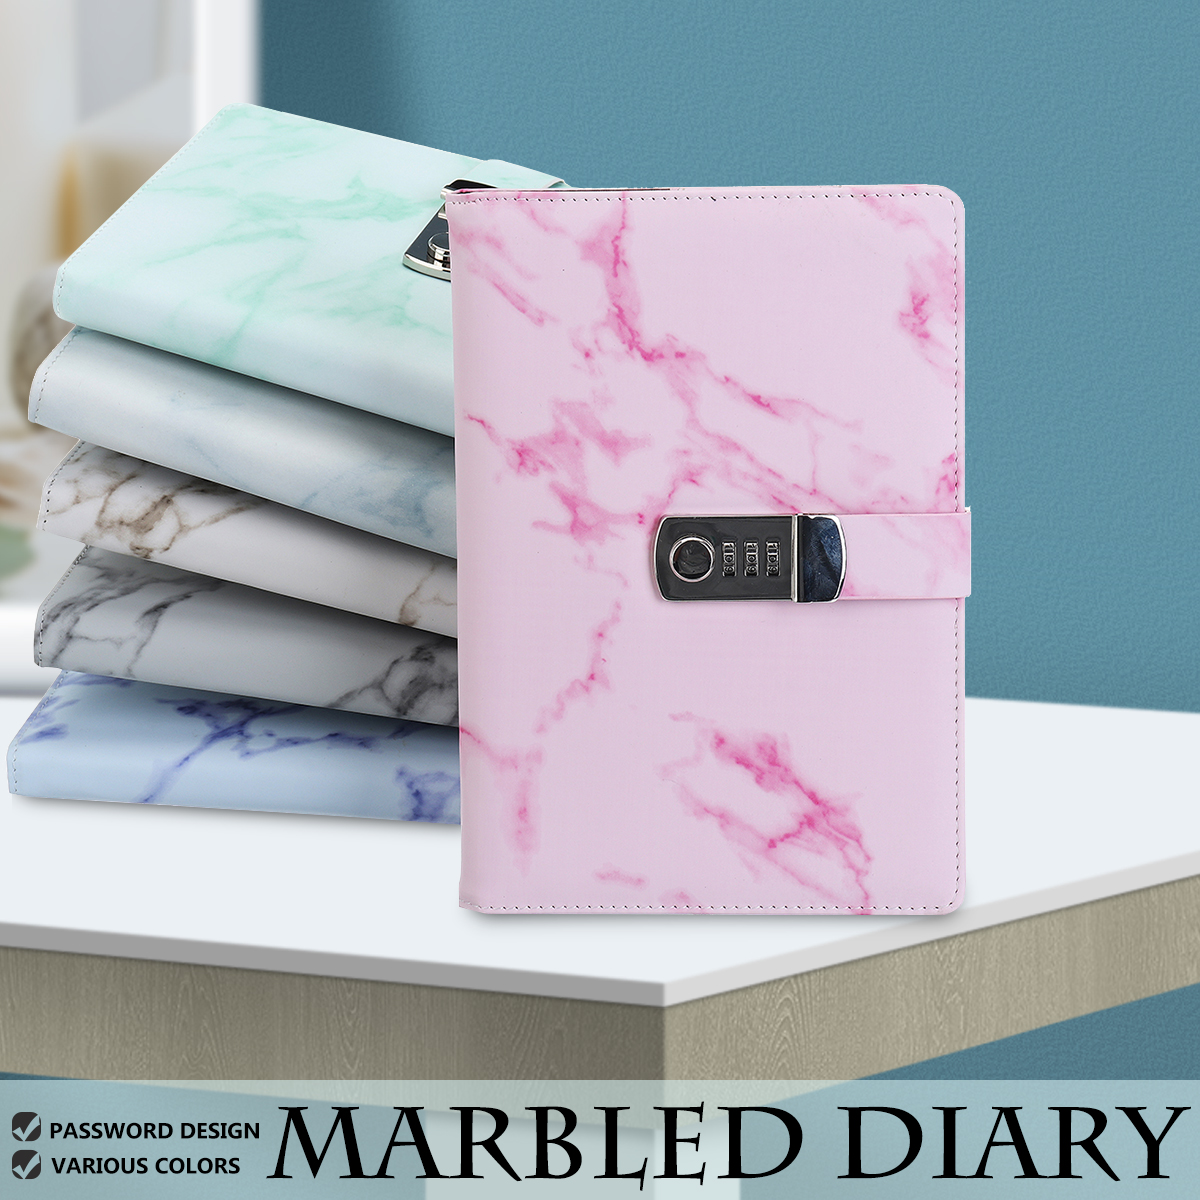 A5 Notebook Paper Vintage Leather Marbling Diary Journal With Combination Password Lock Code Notebook School Office Stationery